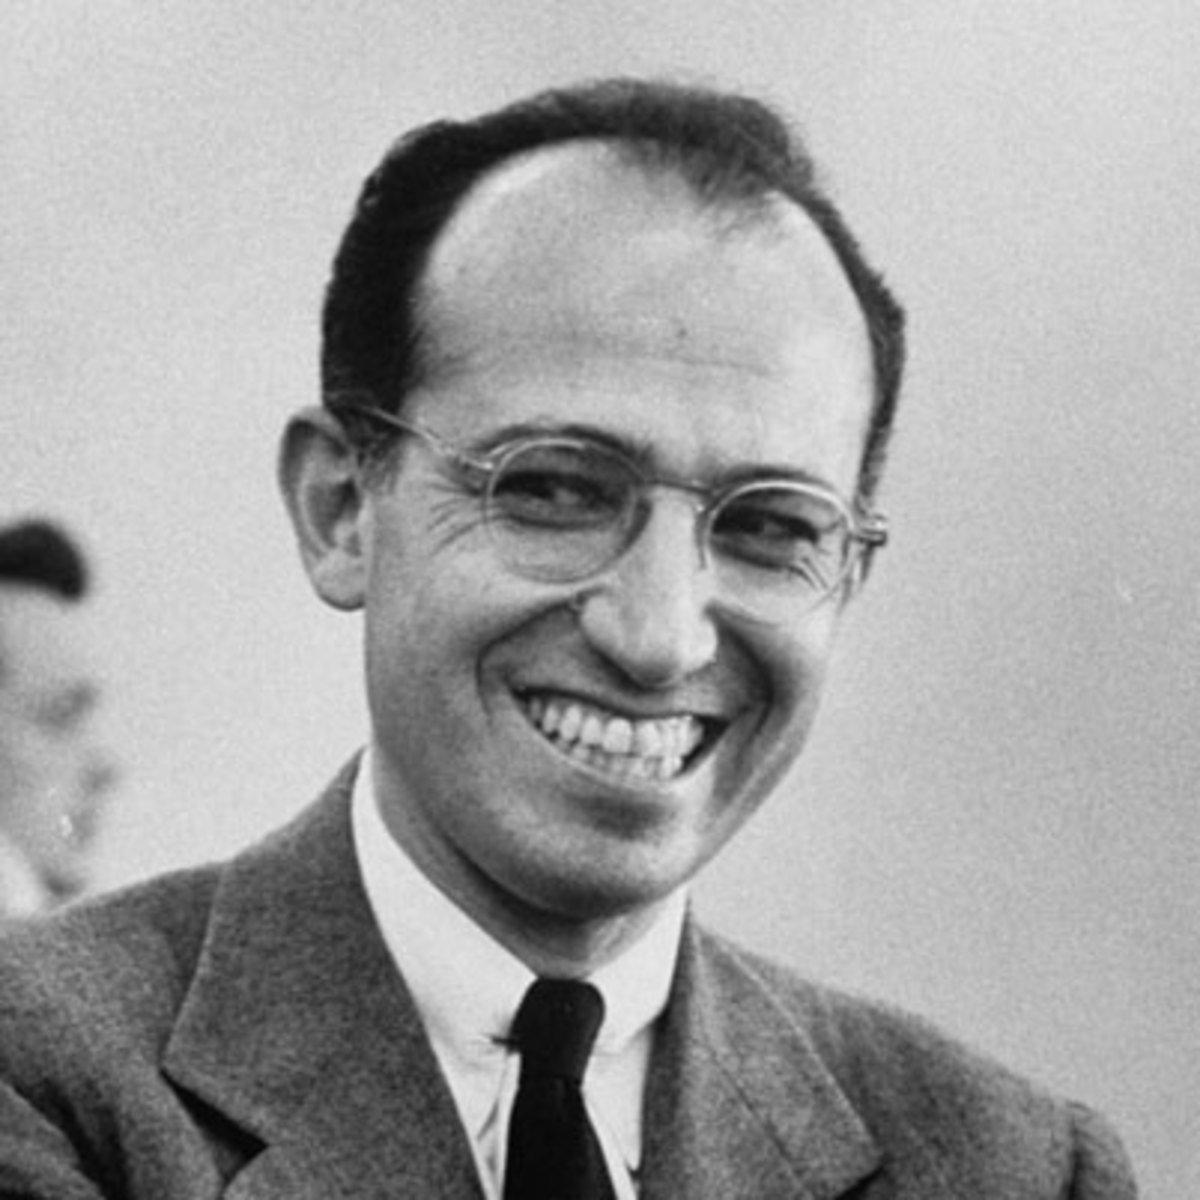 Jonas Salk (1914-1995) developed the first effective polio vaccine in the mid-1950s.